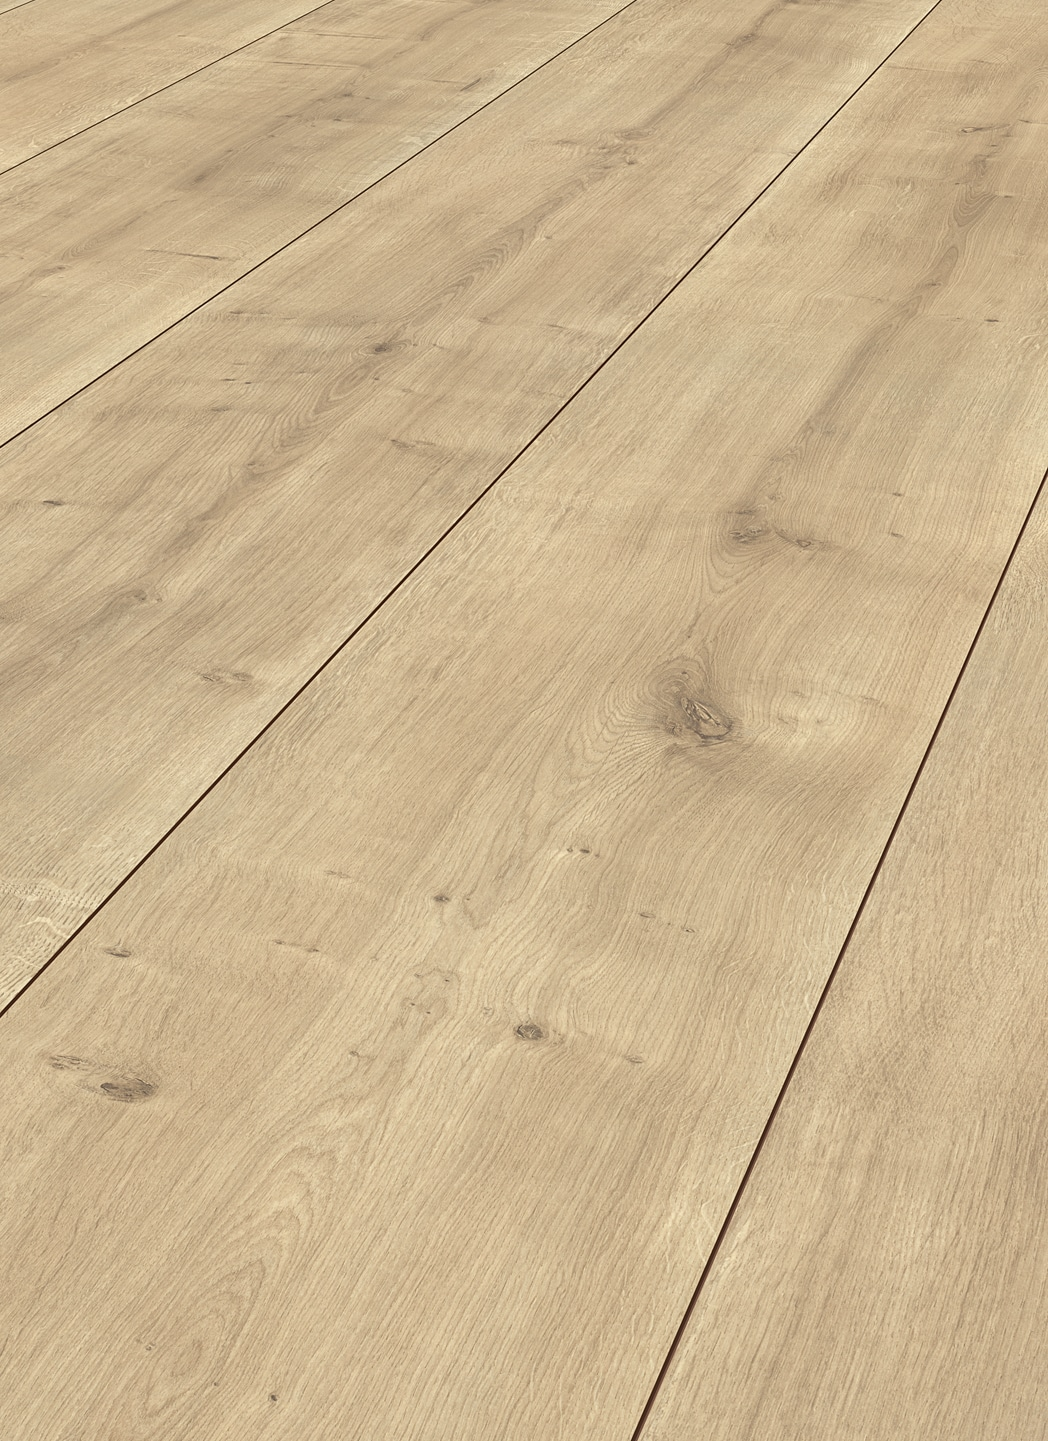 Ter H 252 Rne Oak Cumberland Pale Brown Laminate Extra Wide